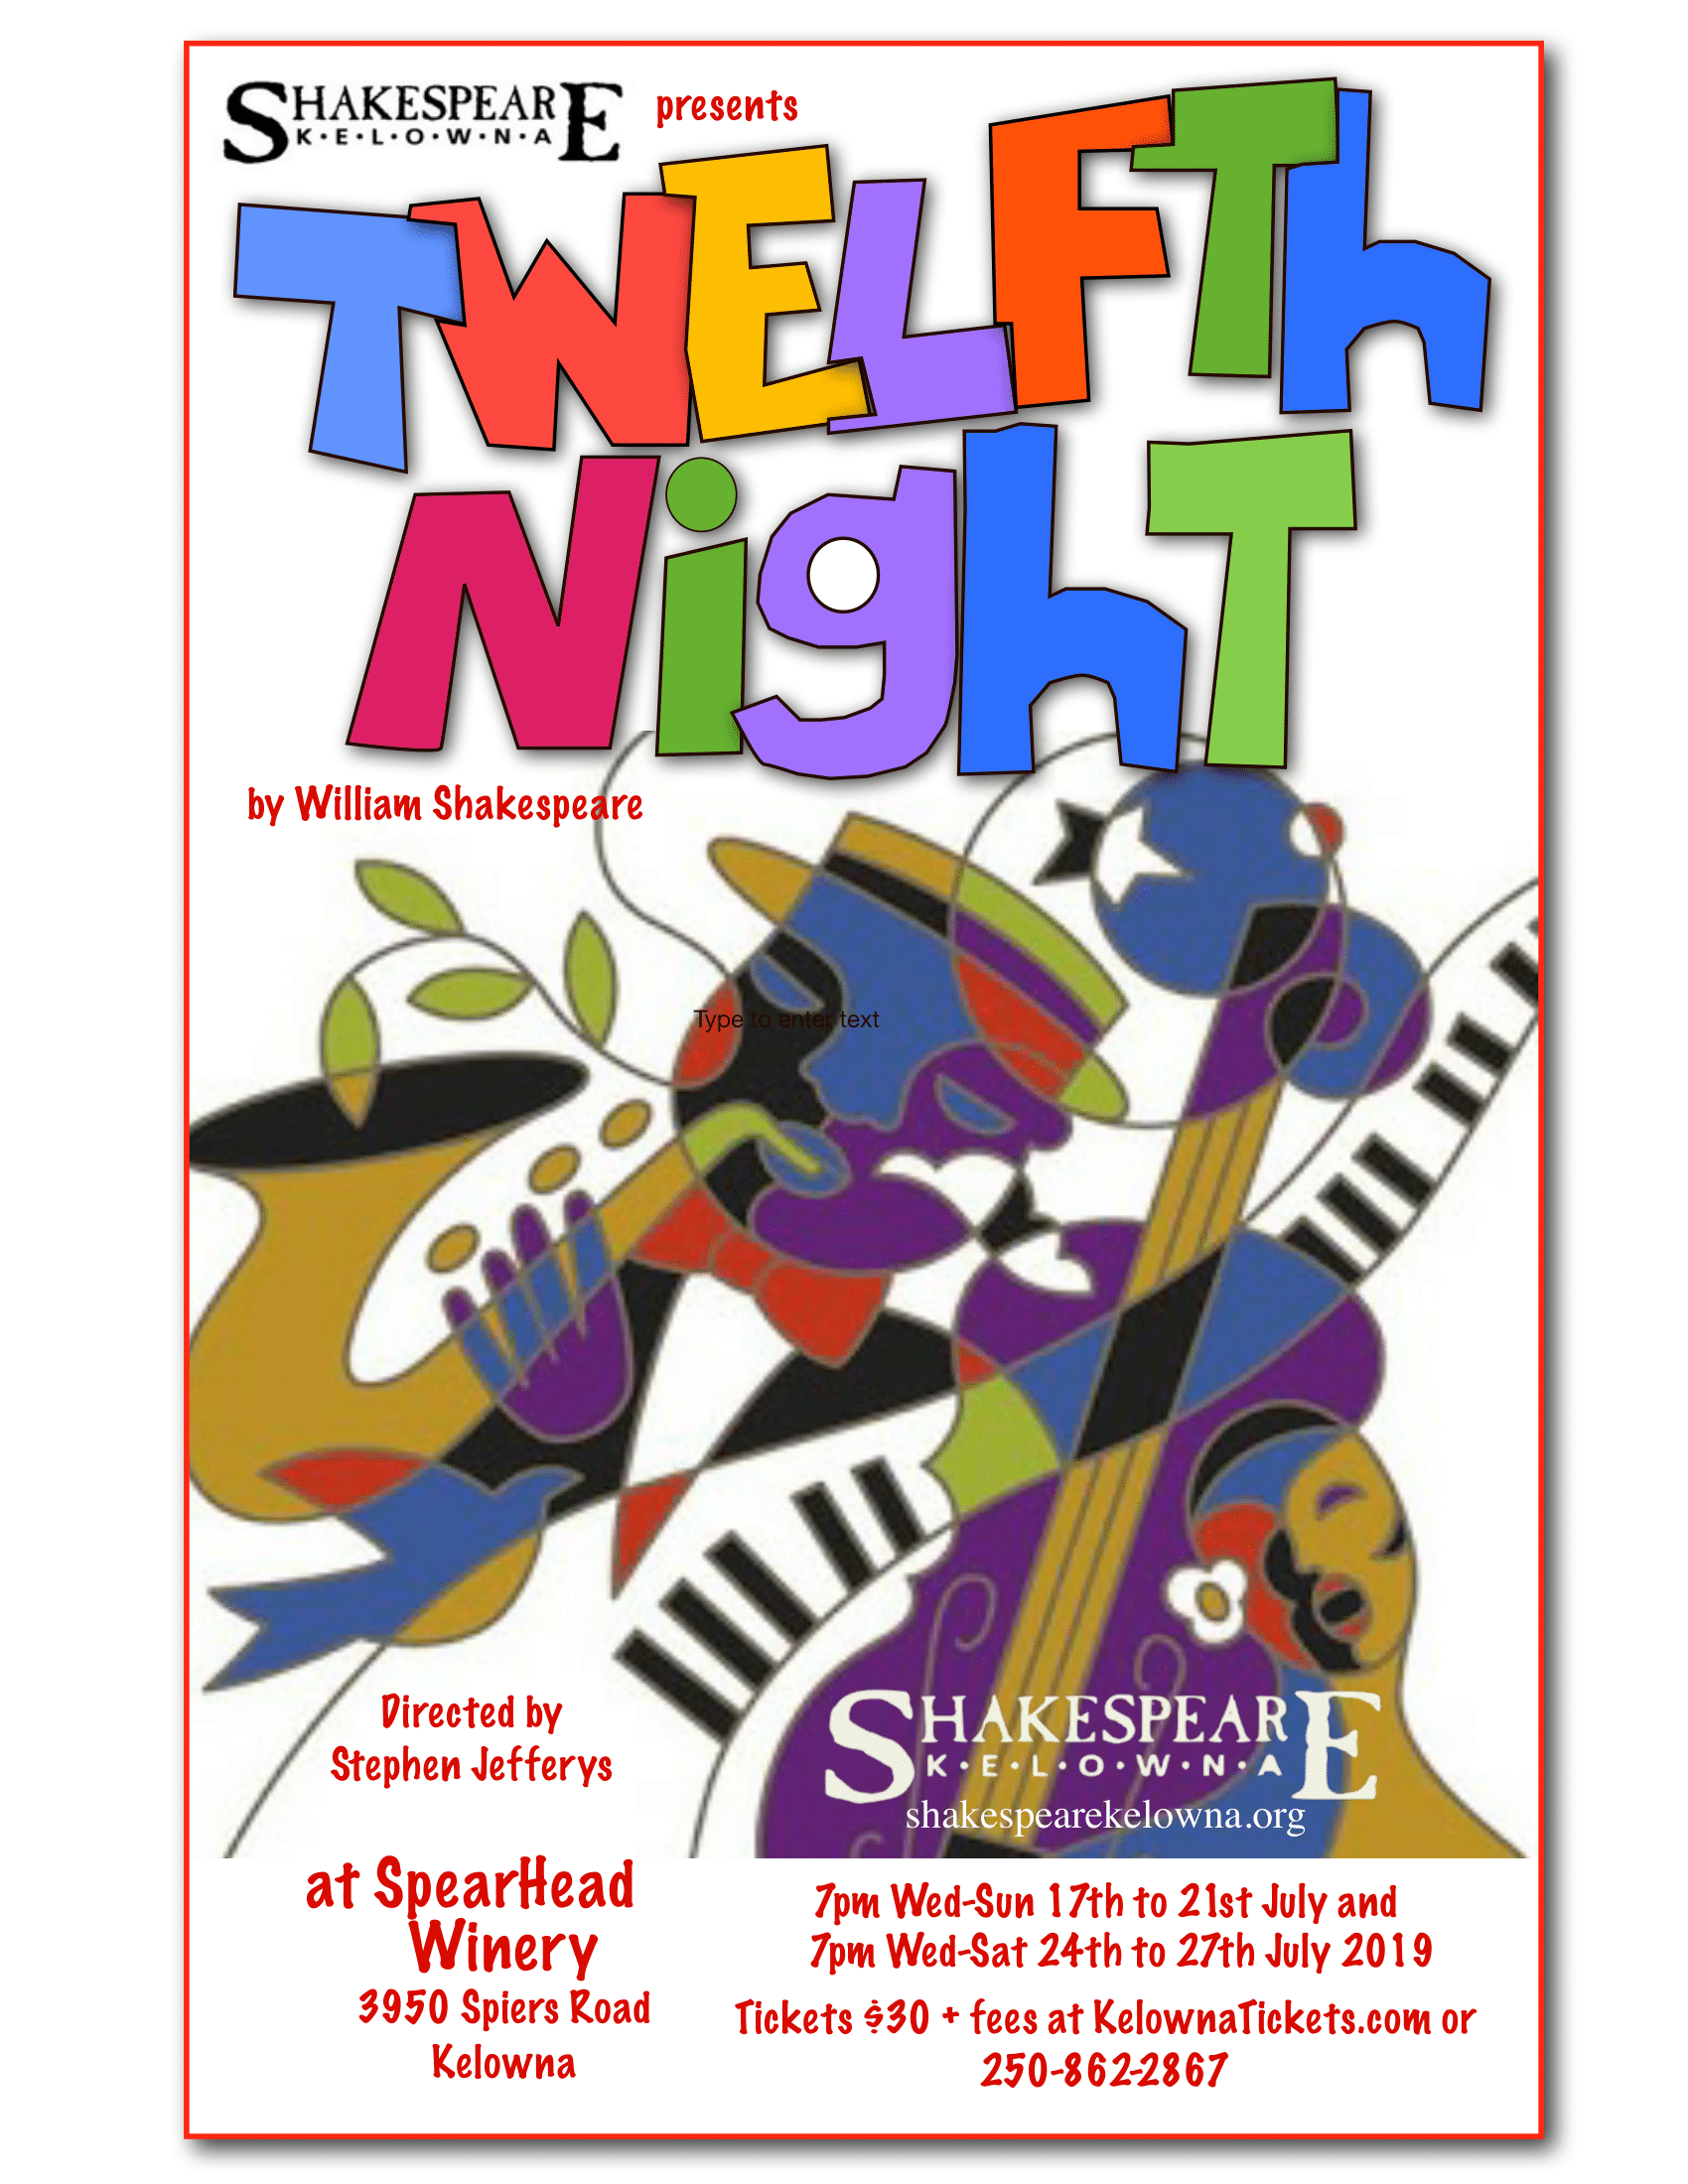 2019 Twlefth Night poster for Shakespeare Kelowna's 2019 performance